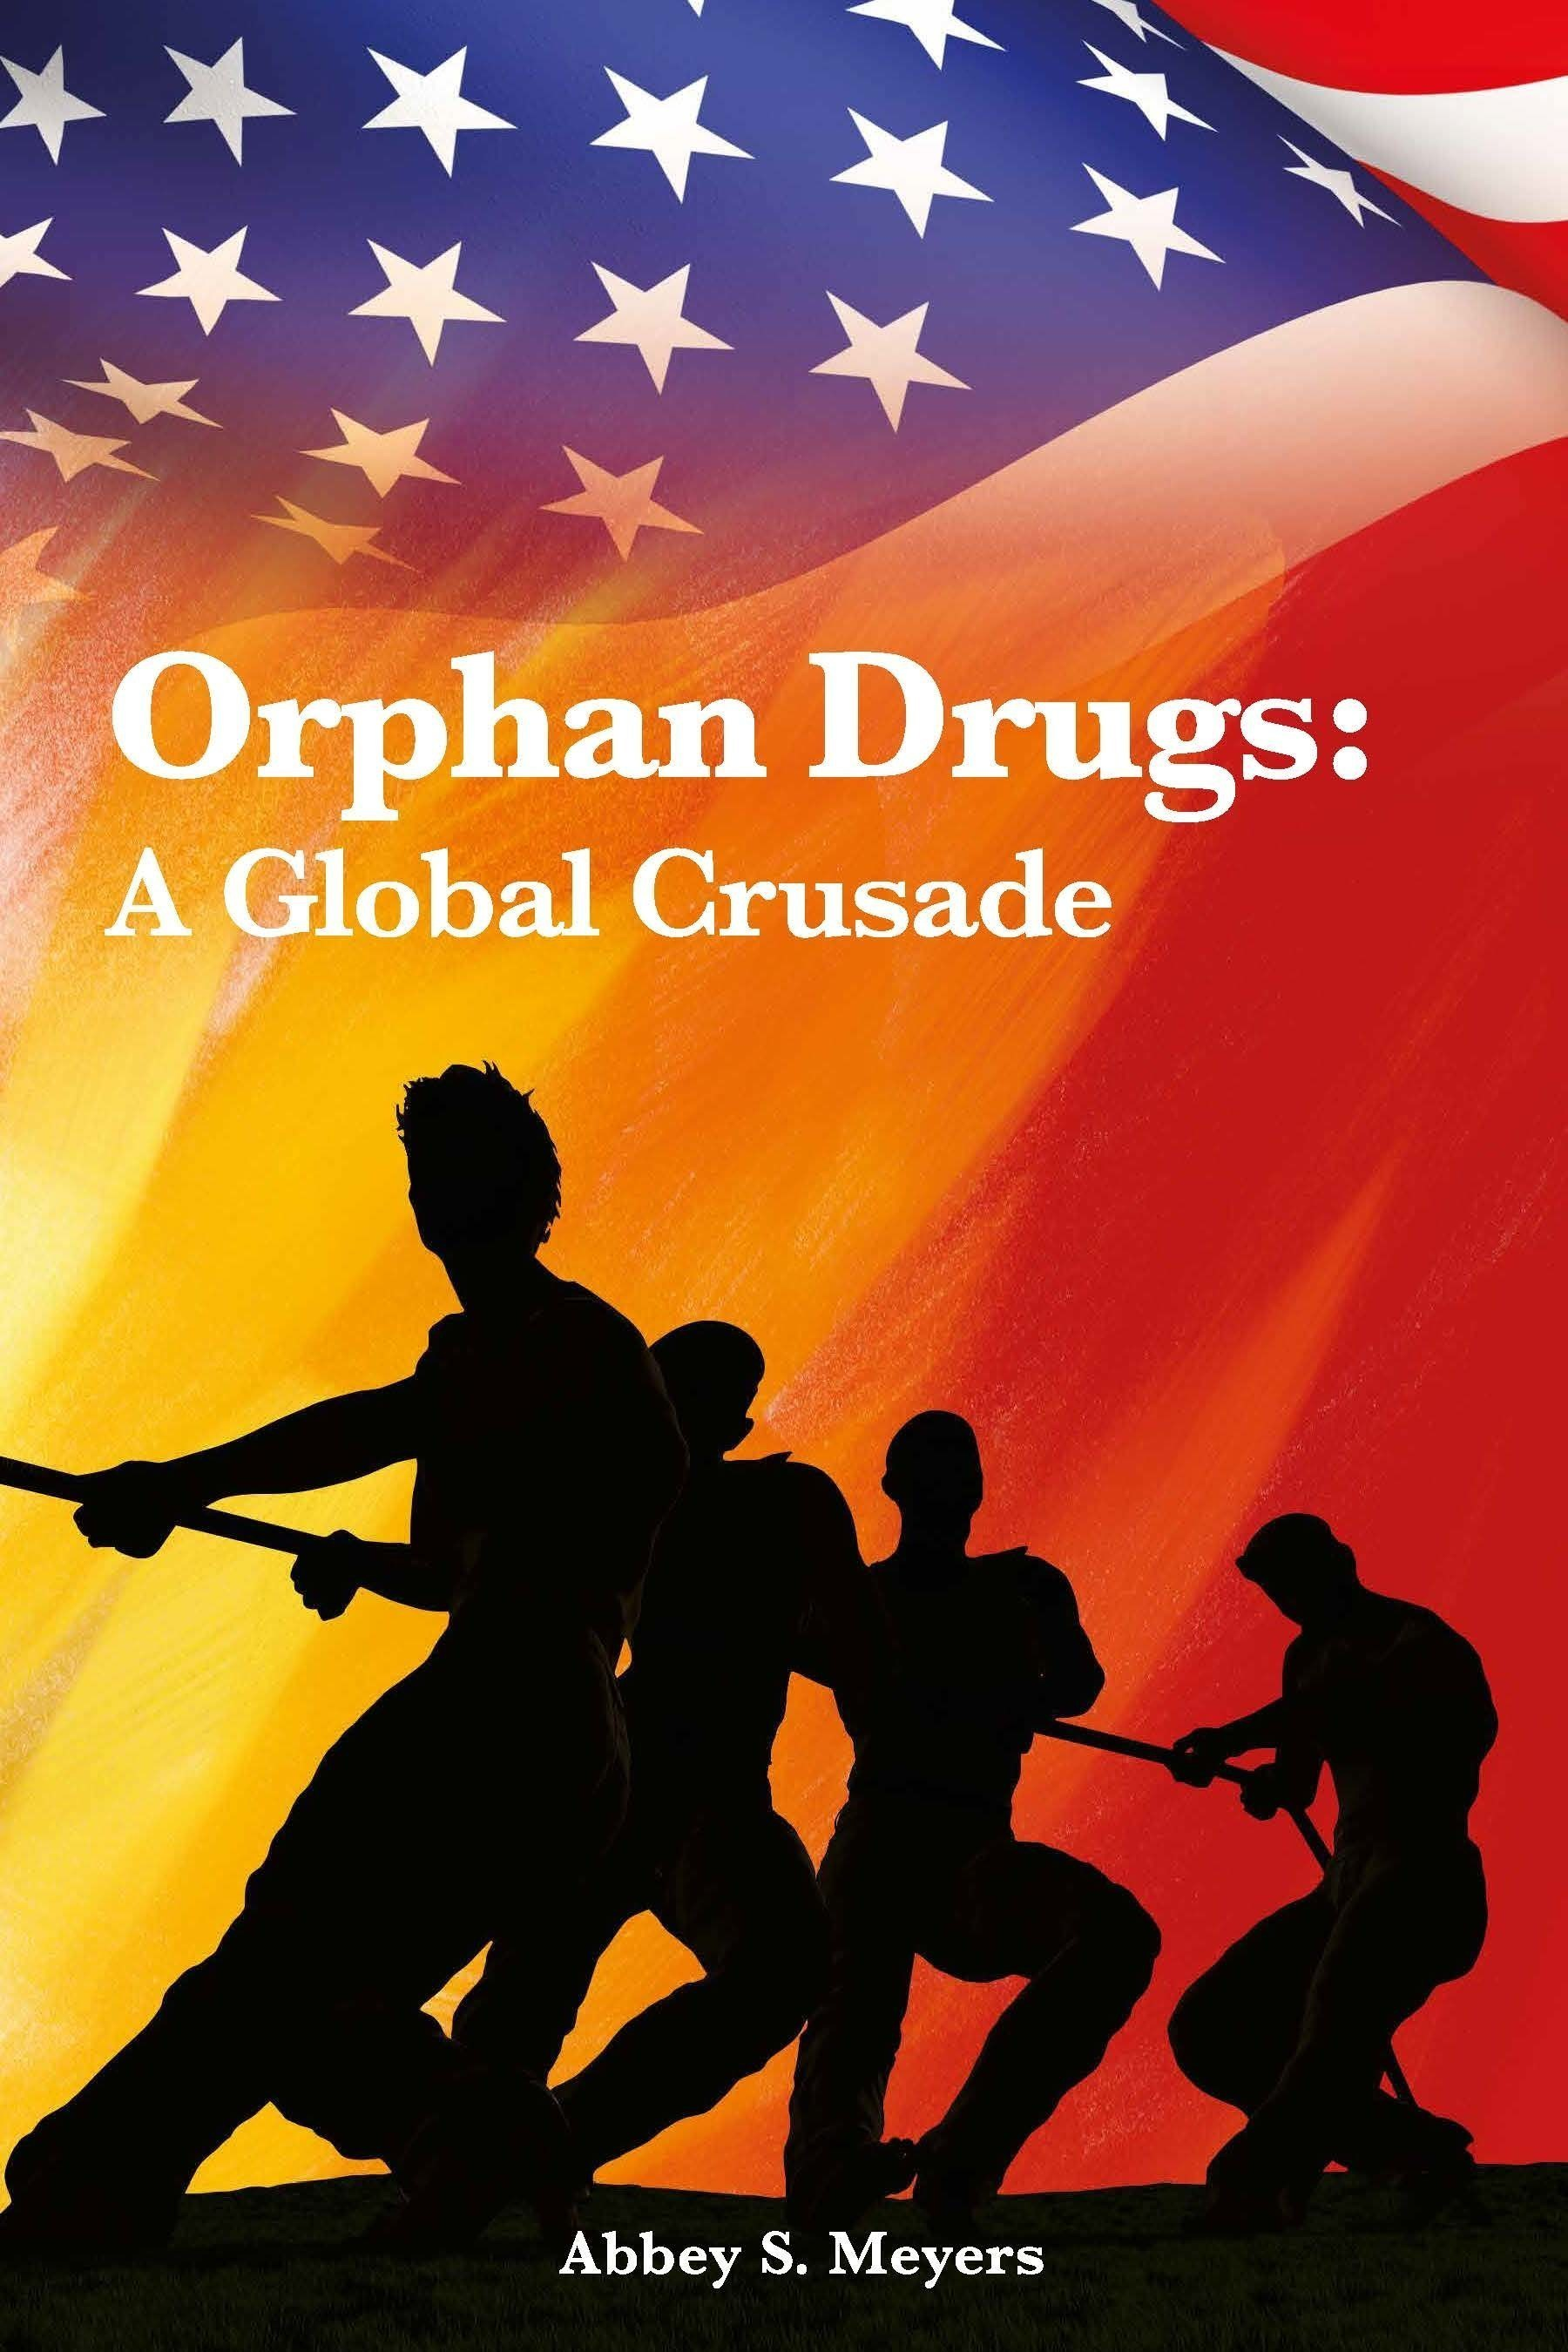 Medunik Canada is pleased to announce the launch of NORD Founder, Abbey Meyers' memoir 'Orphan